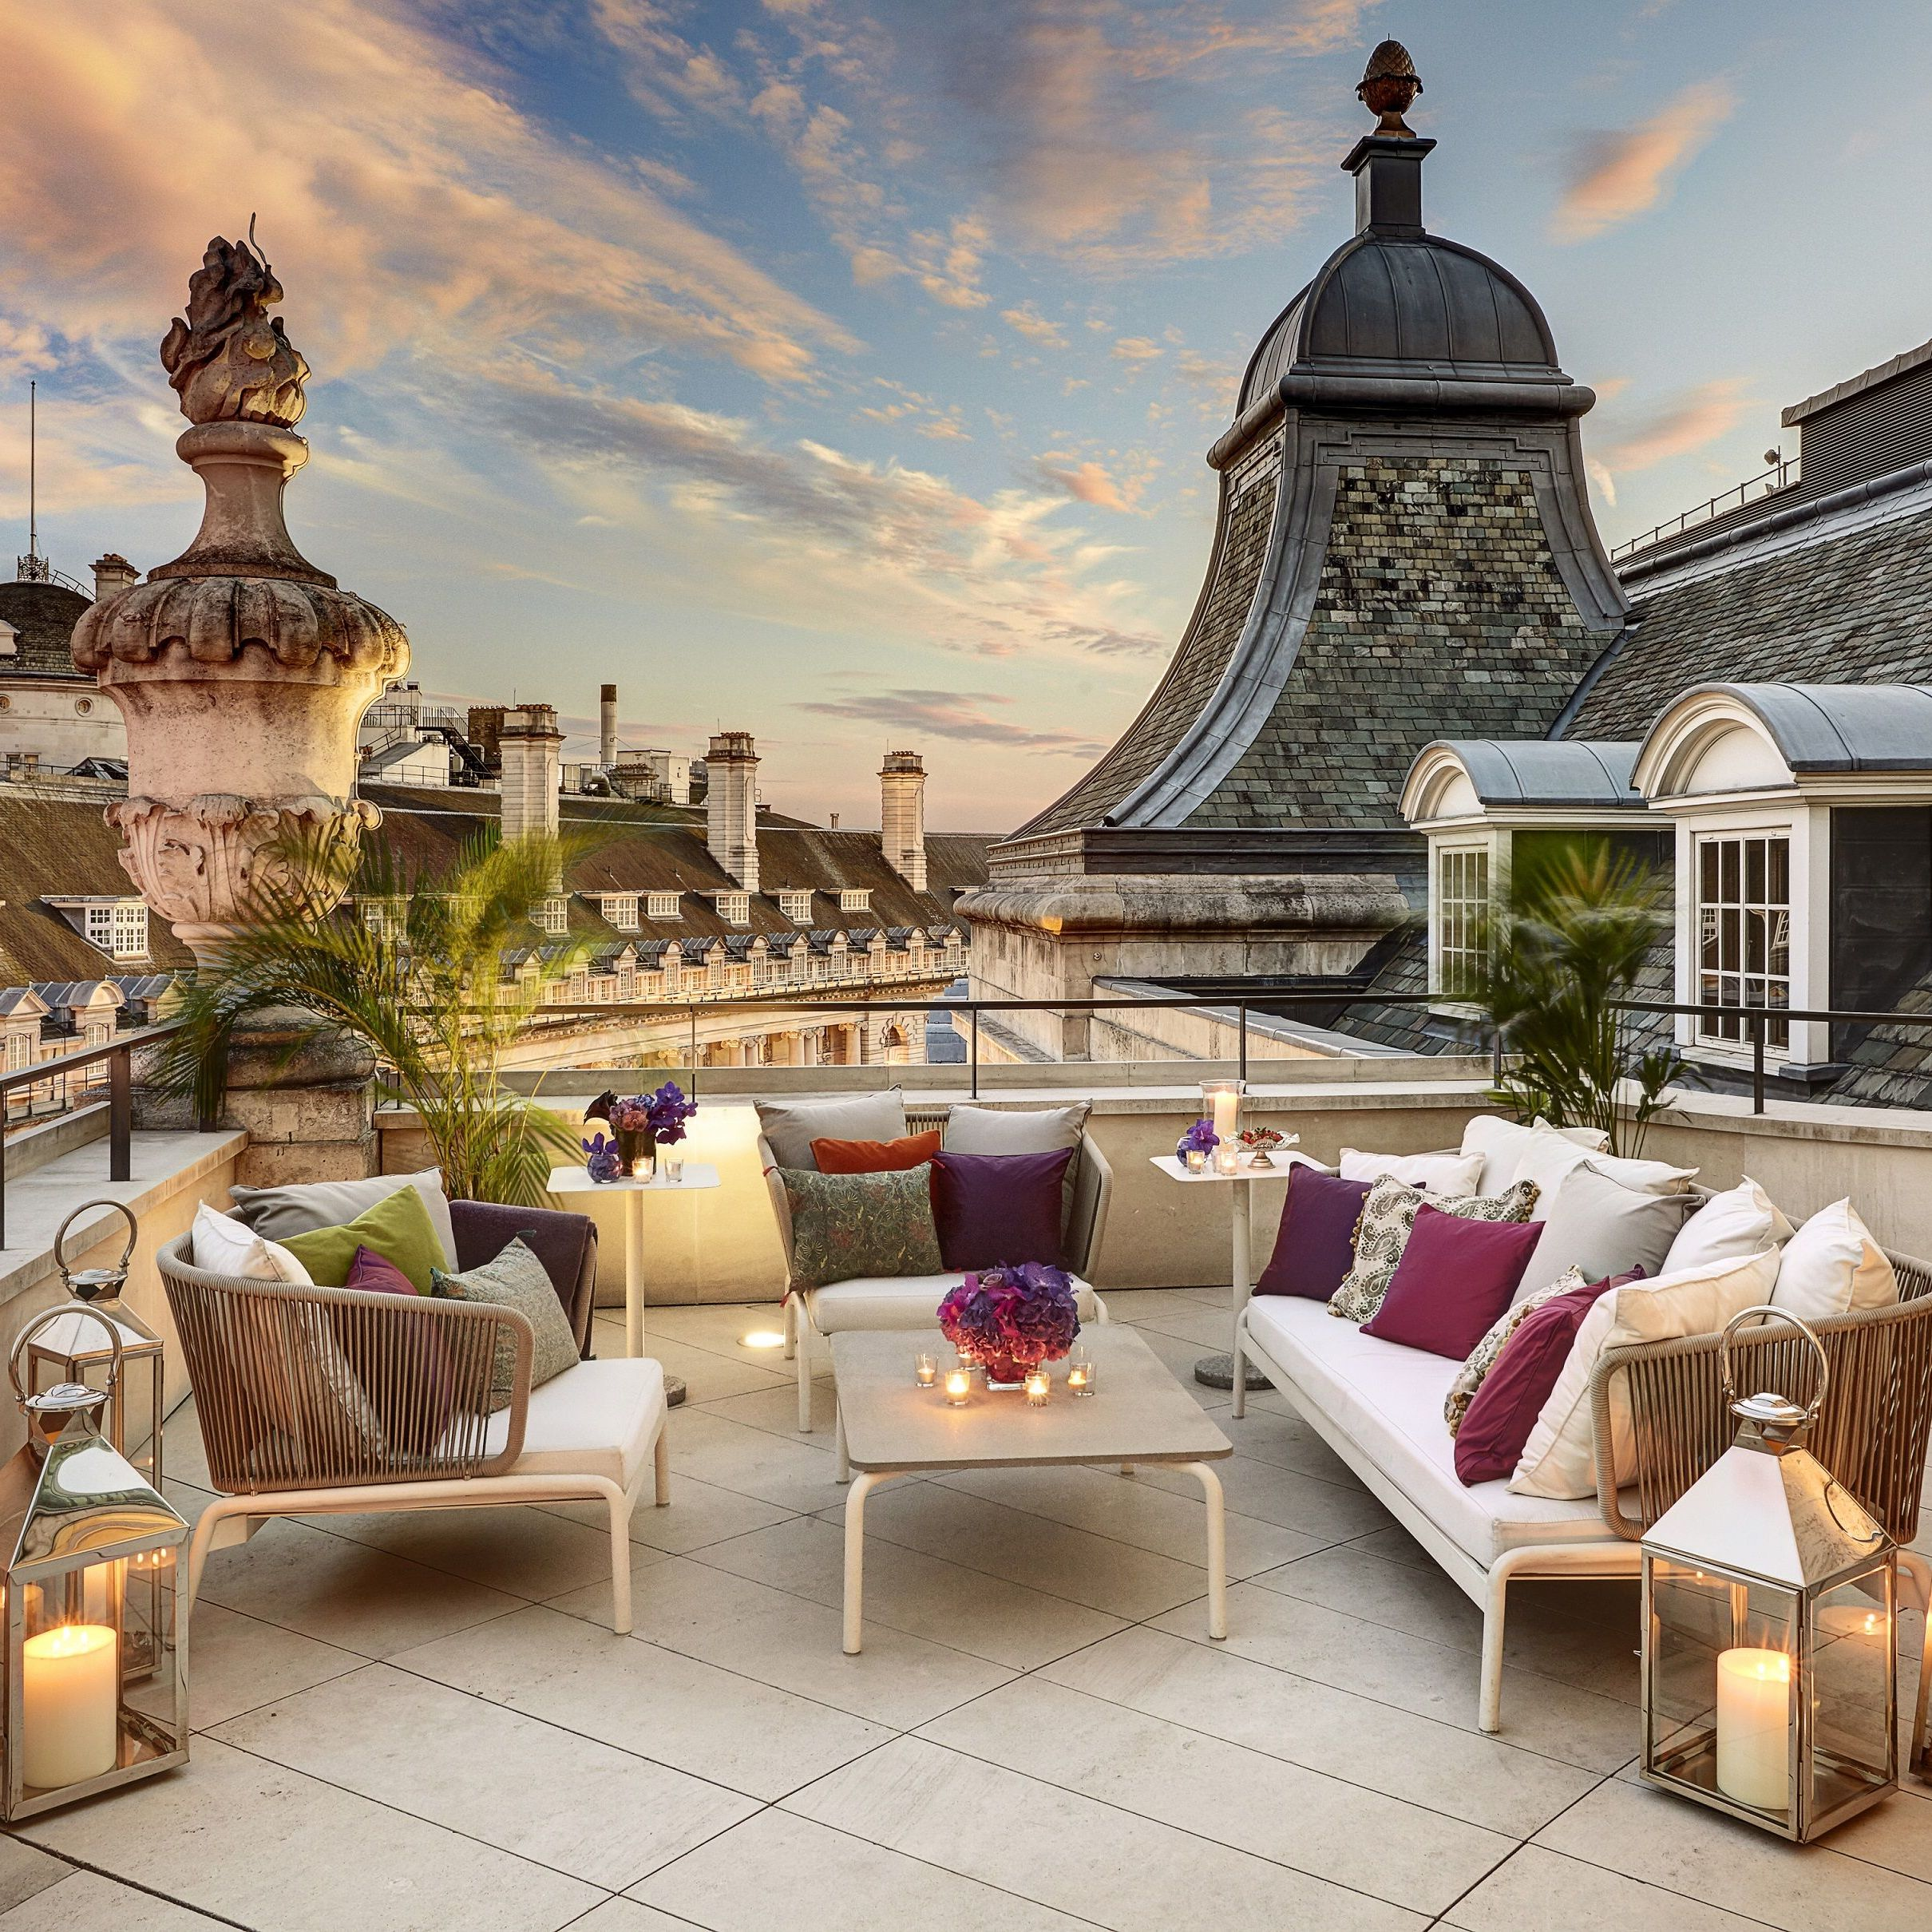 Hotel Cafe Royal Dome Penthouse